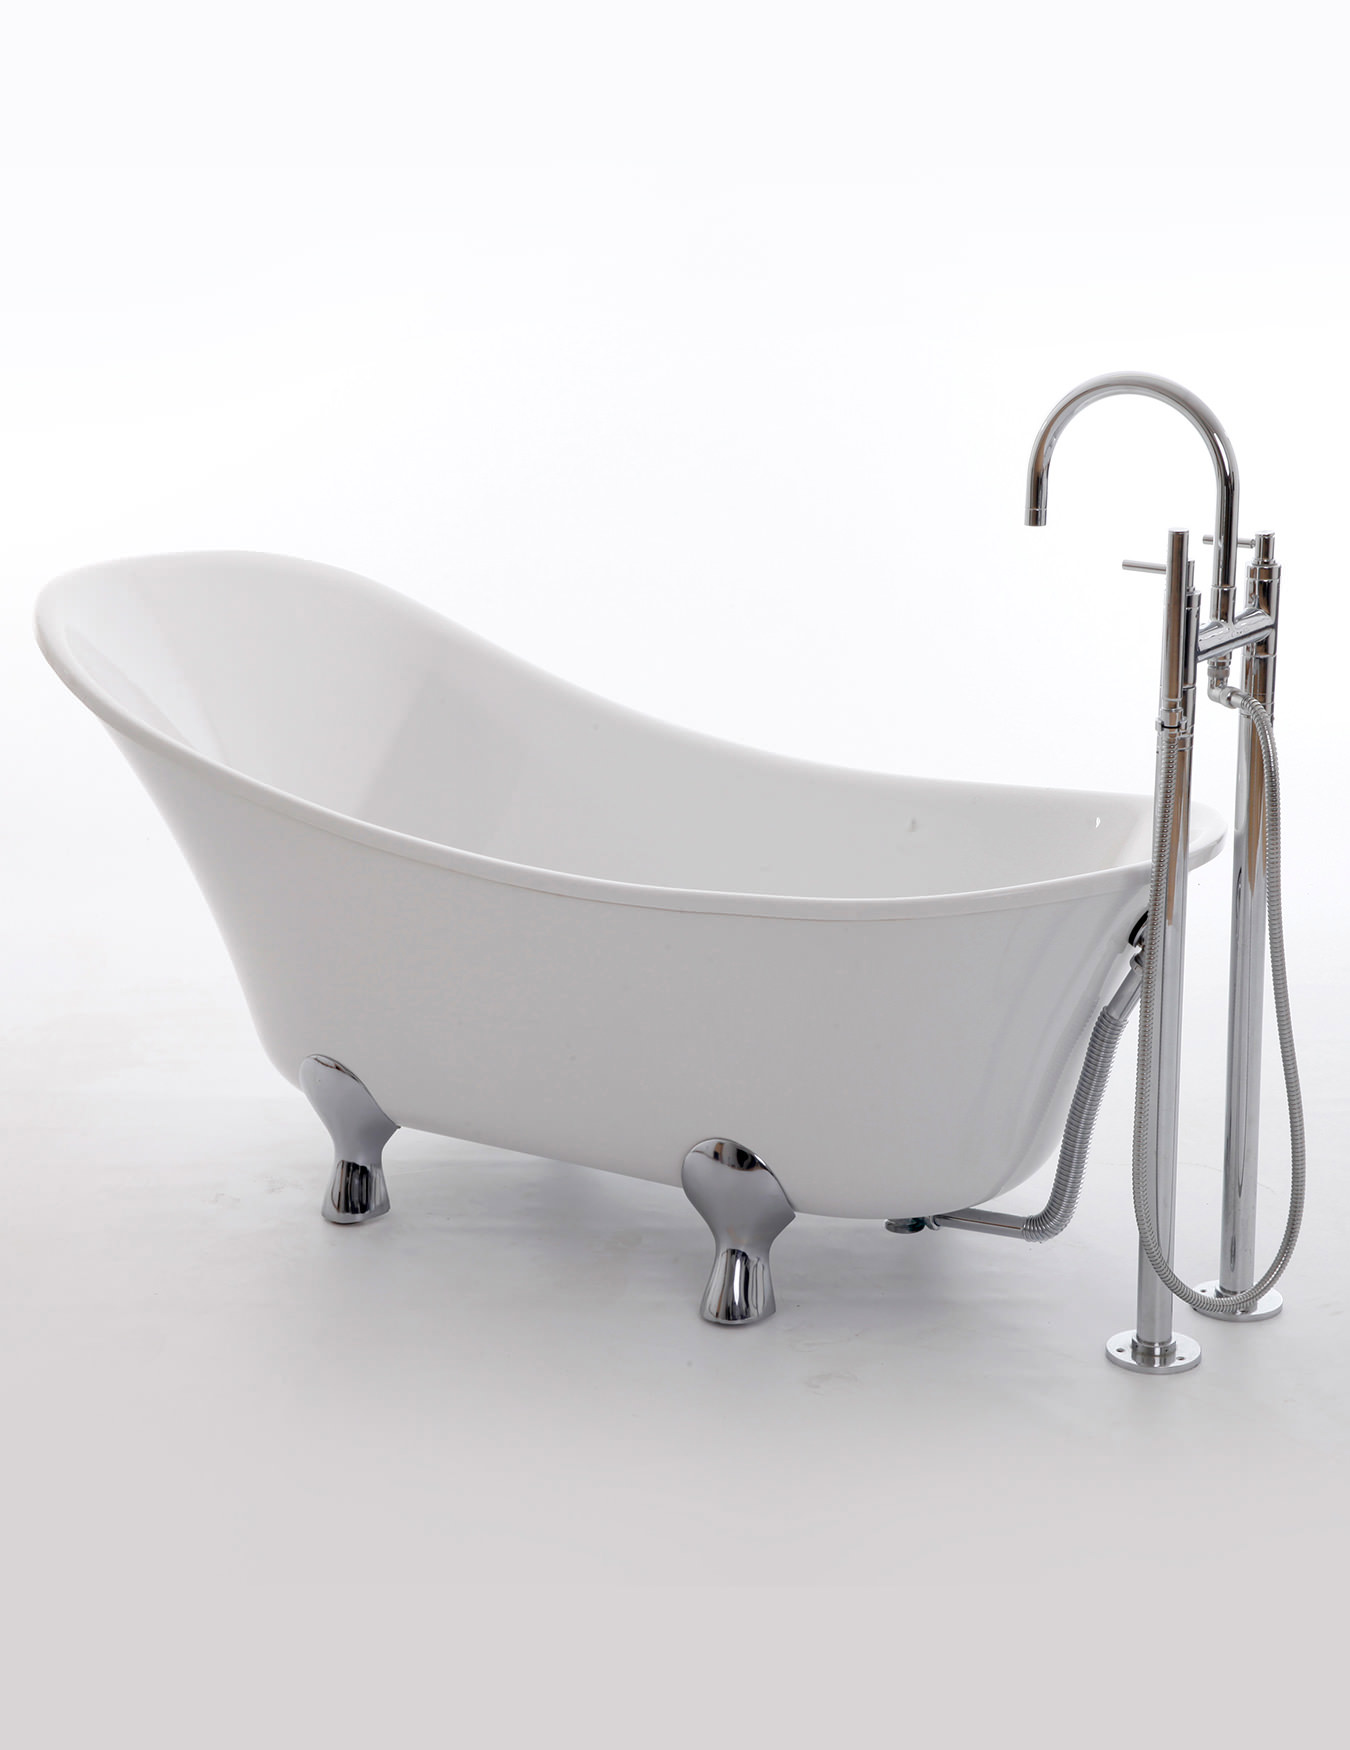 Royce Morgan Kingswood Freestanding Slipper Bath 1540 x 690mm